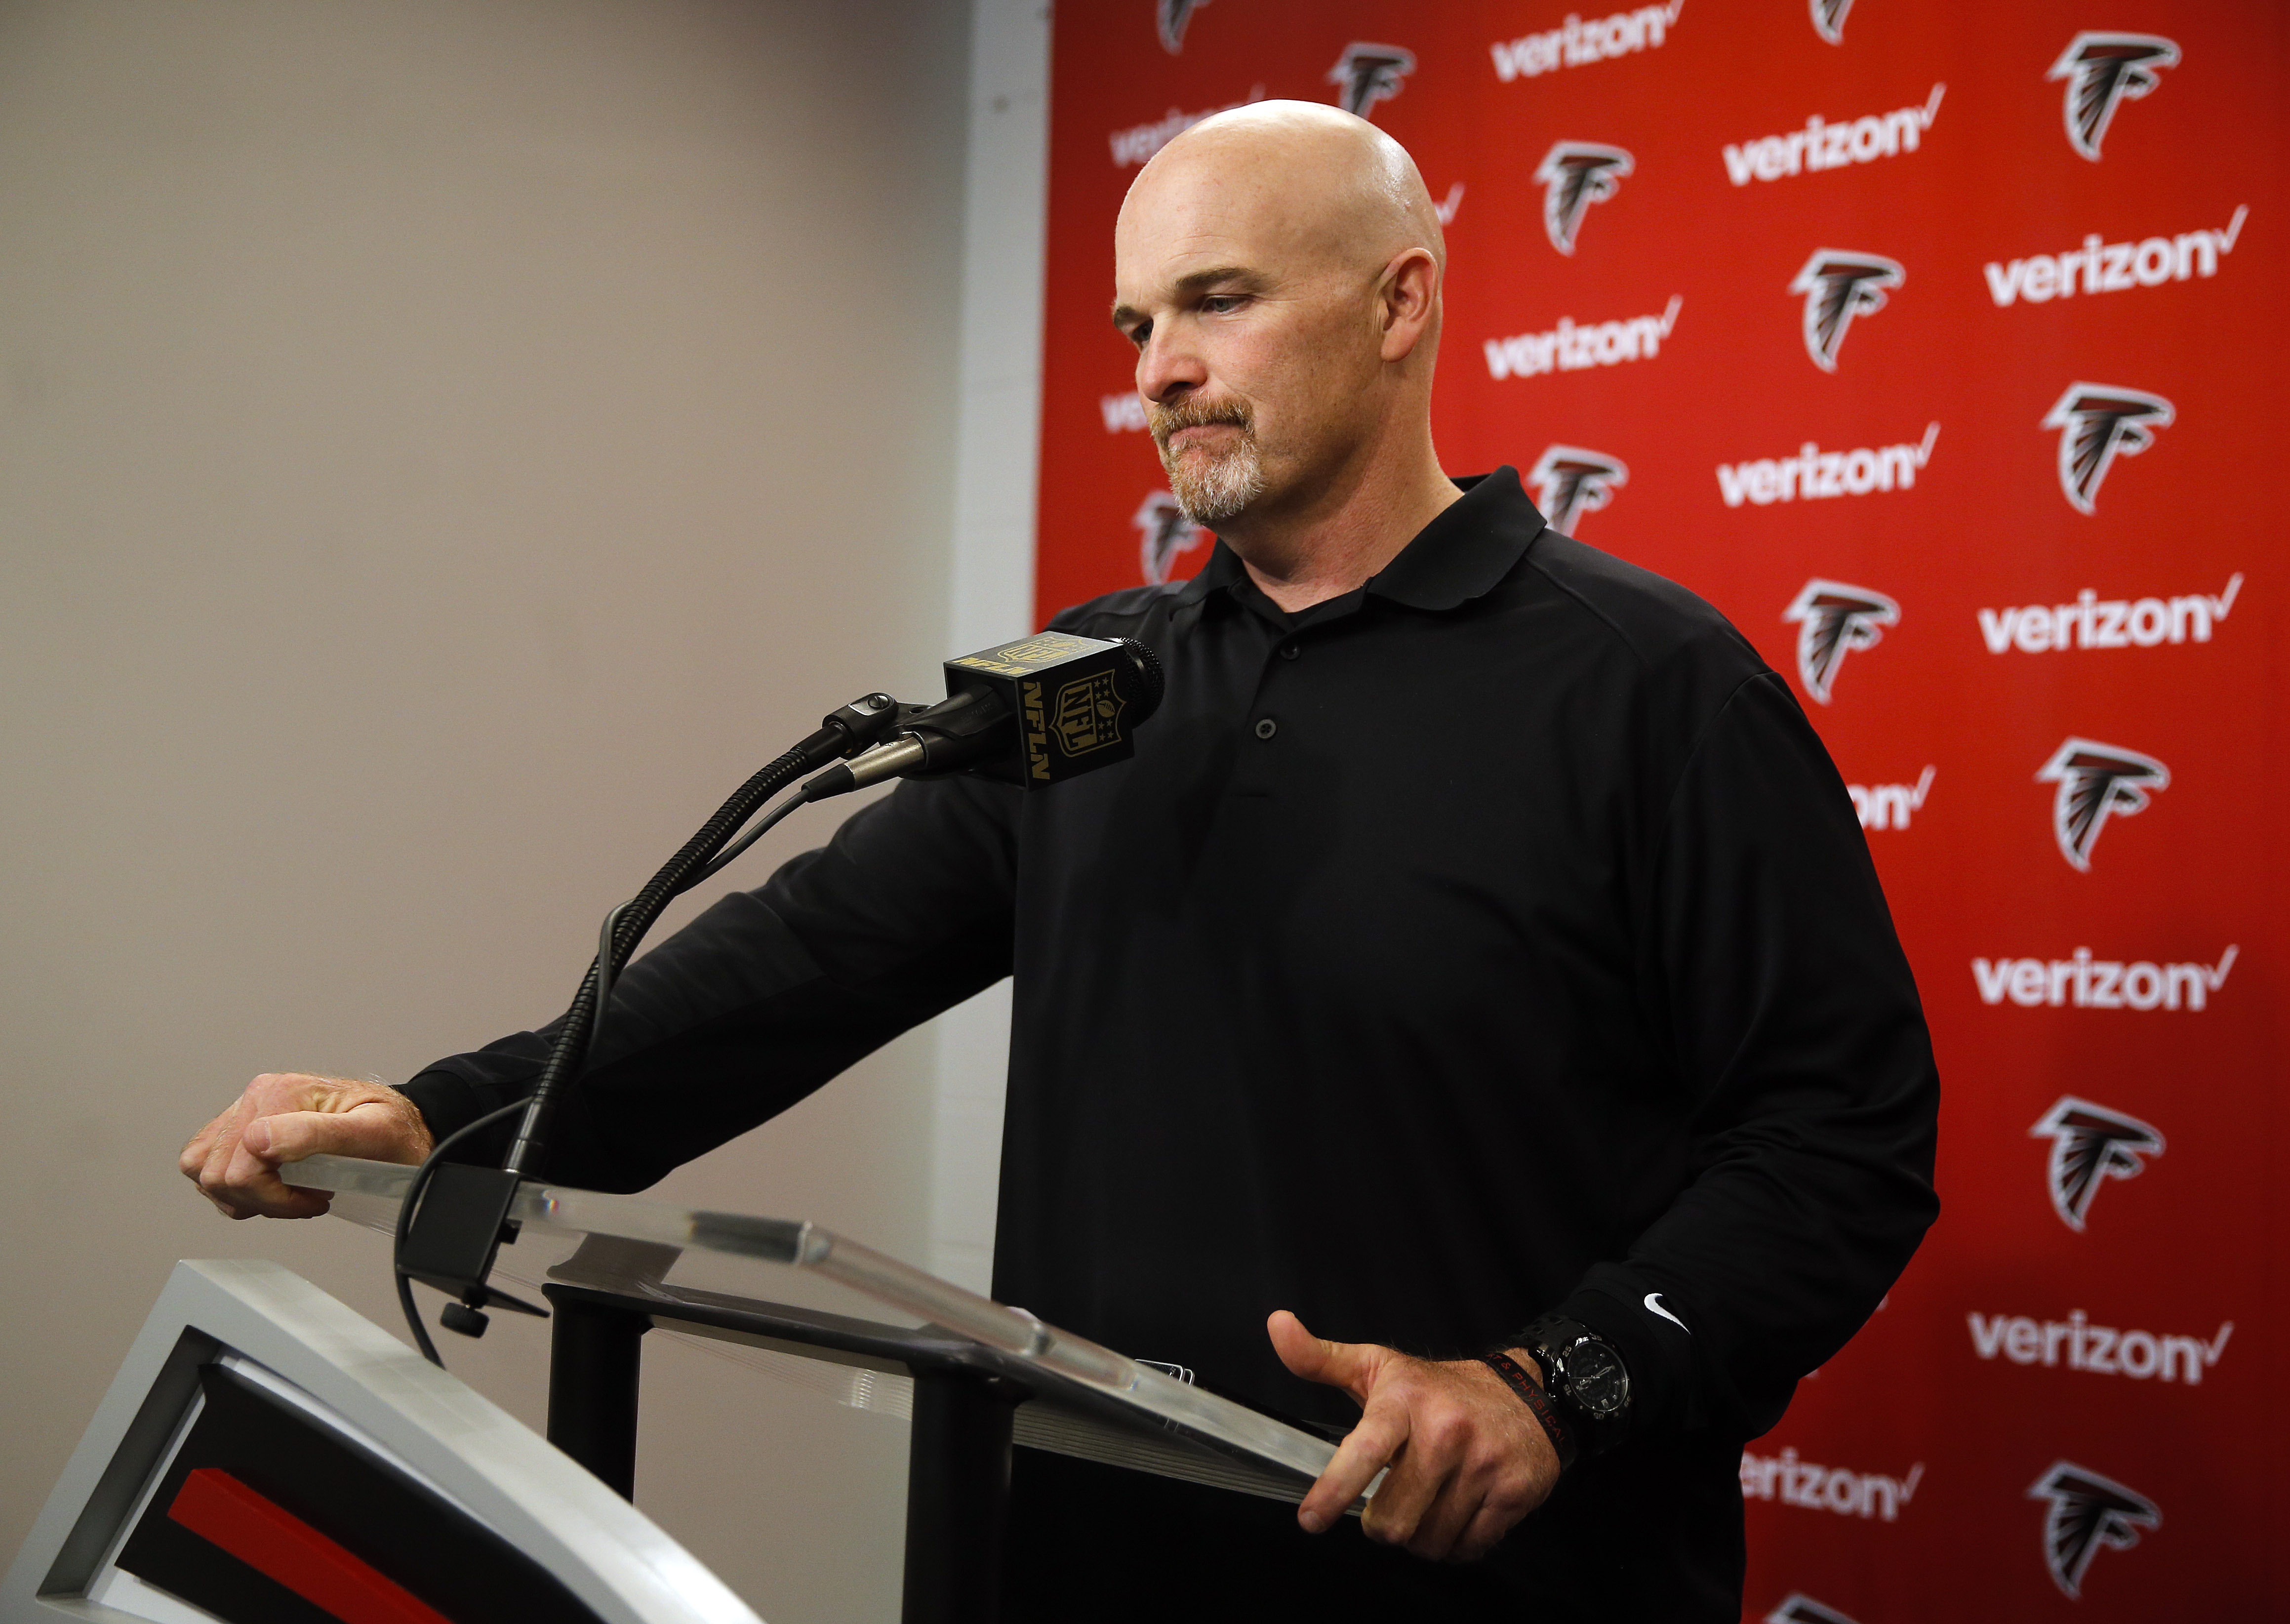 Atlanta Falcons NFL football head coach Dan Quinn speaks during a news conference at team headquarters  Monday, Jan. 4, 2016, in Flowery Branch, Ga. The Falcons finished the season 8-8 after a 20-17 loss to New Orleans on Sunday. (AP Photo/John Bazemore)